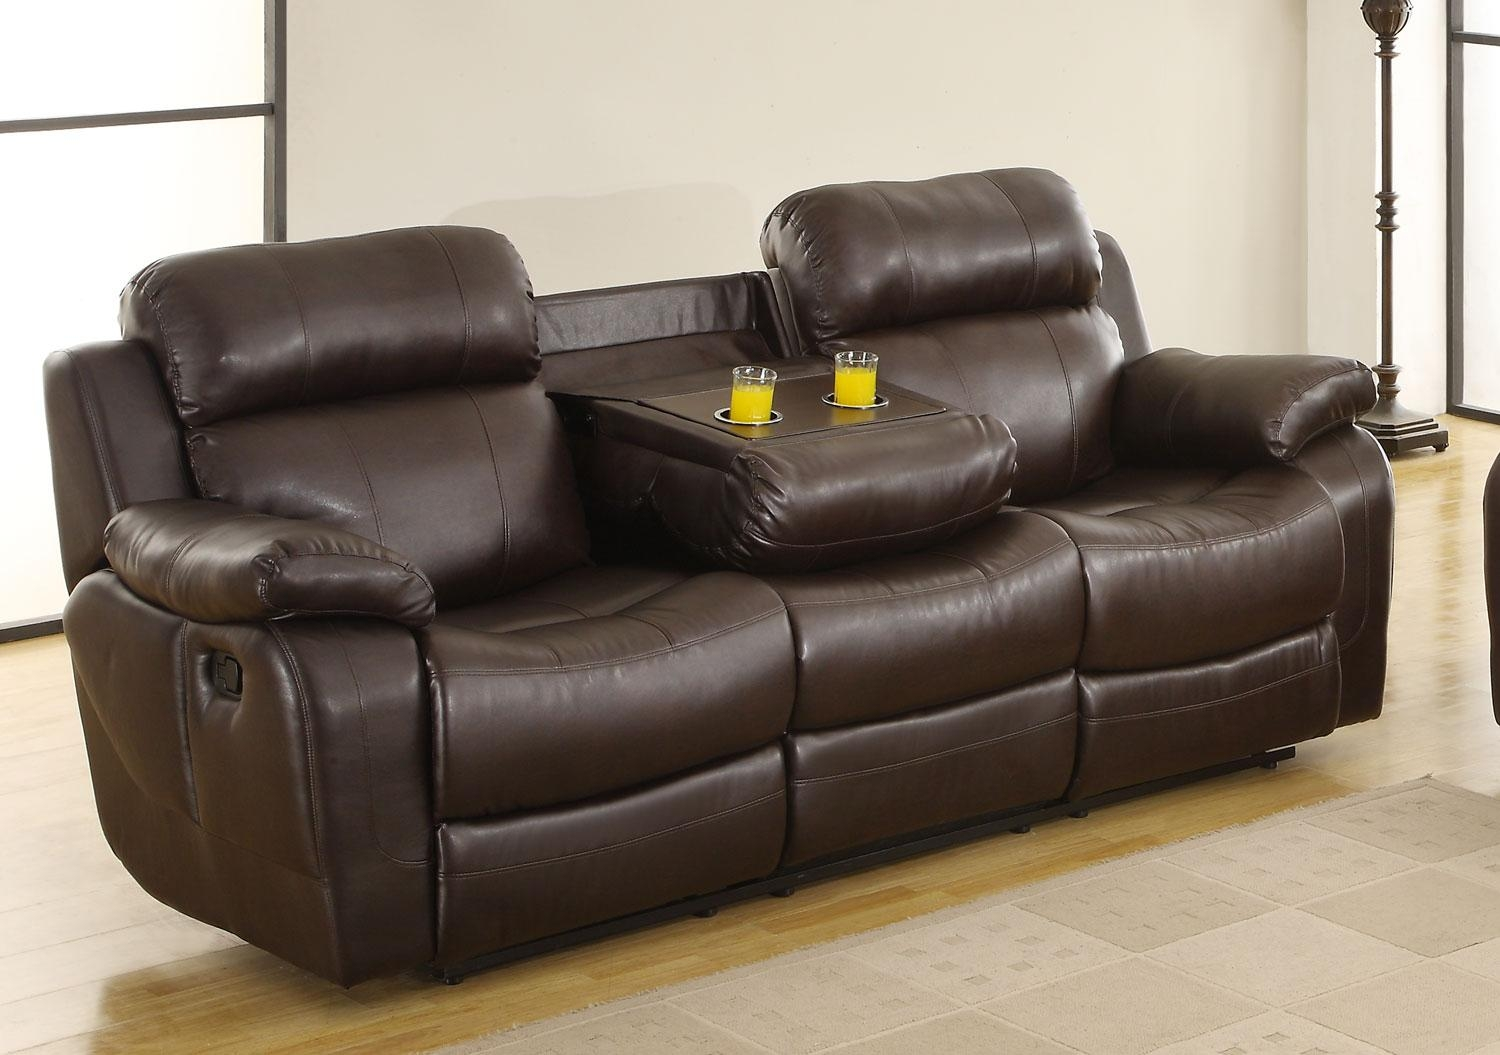 Homelegance Marille Sofa Recliner With Drop Cup Holder – Dark Intended For Sofas With Cup Holders (View 3 of 20)